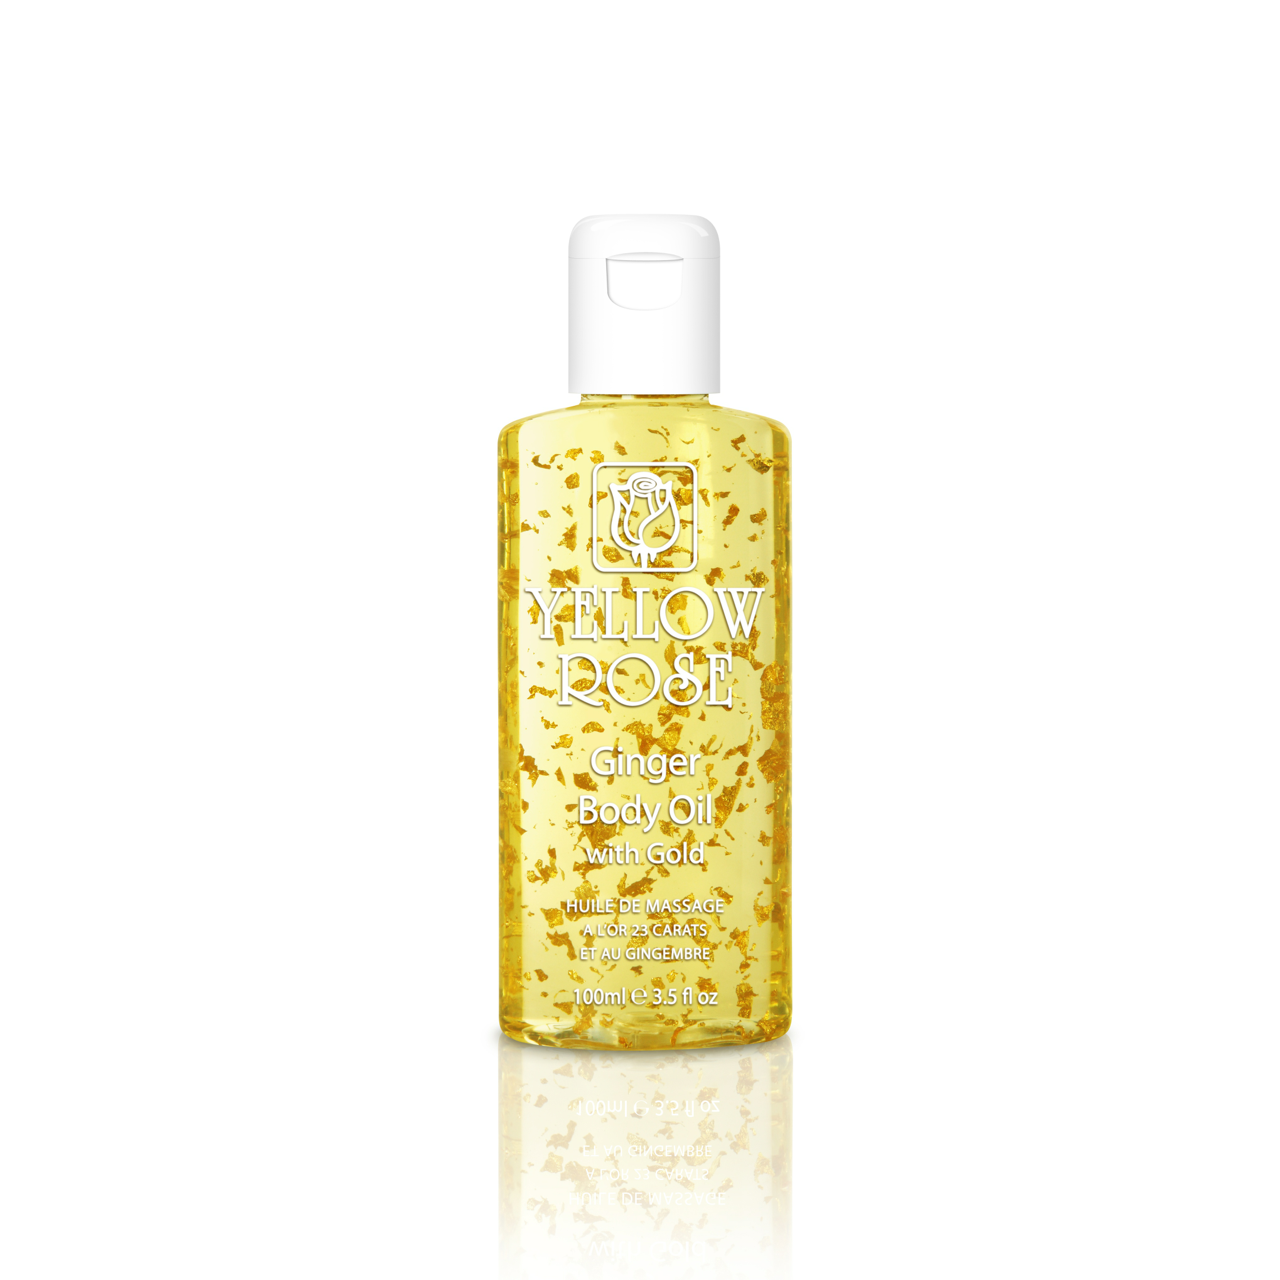 GOLDEN LINE GINGER BODY OIL with GOLD